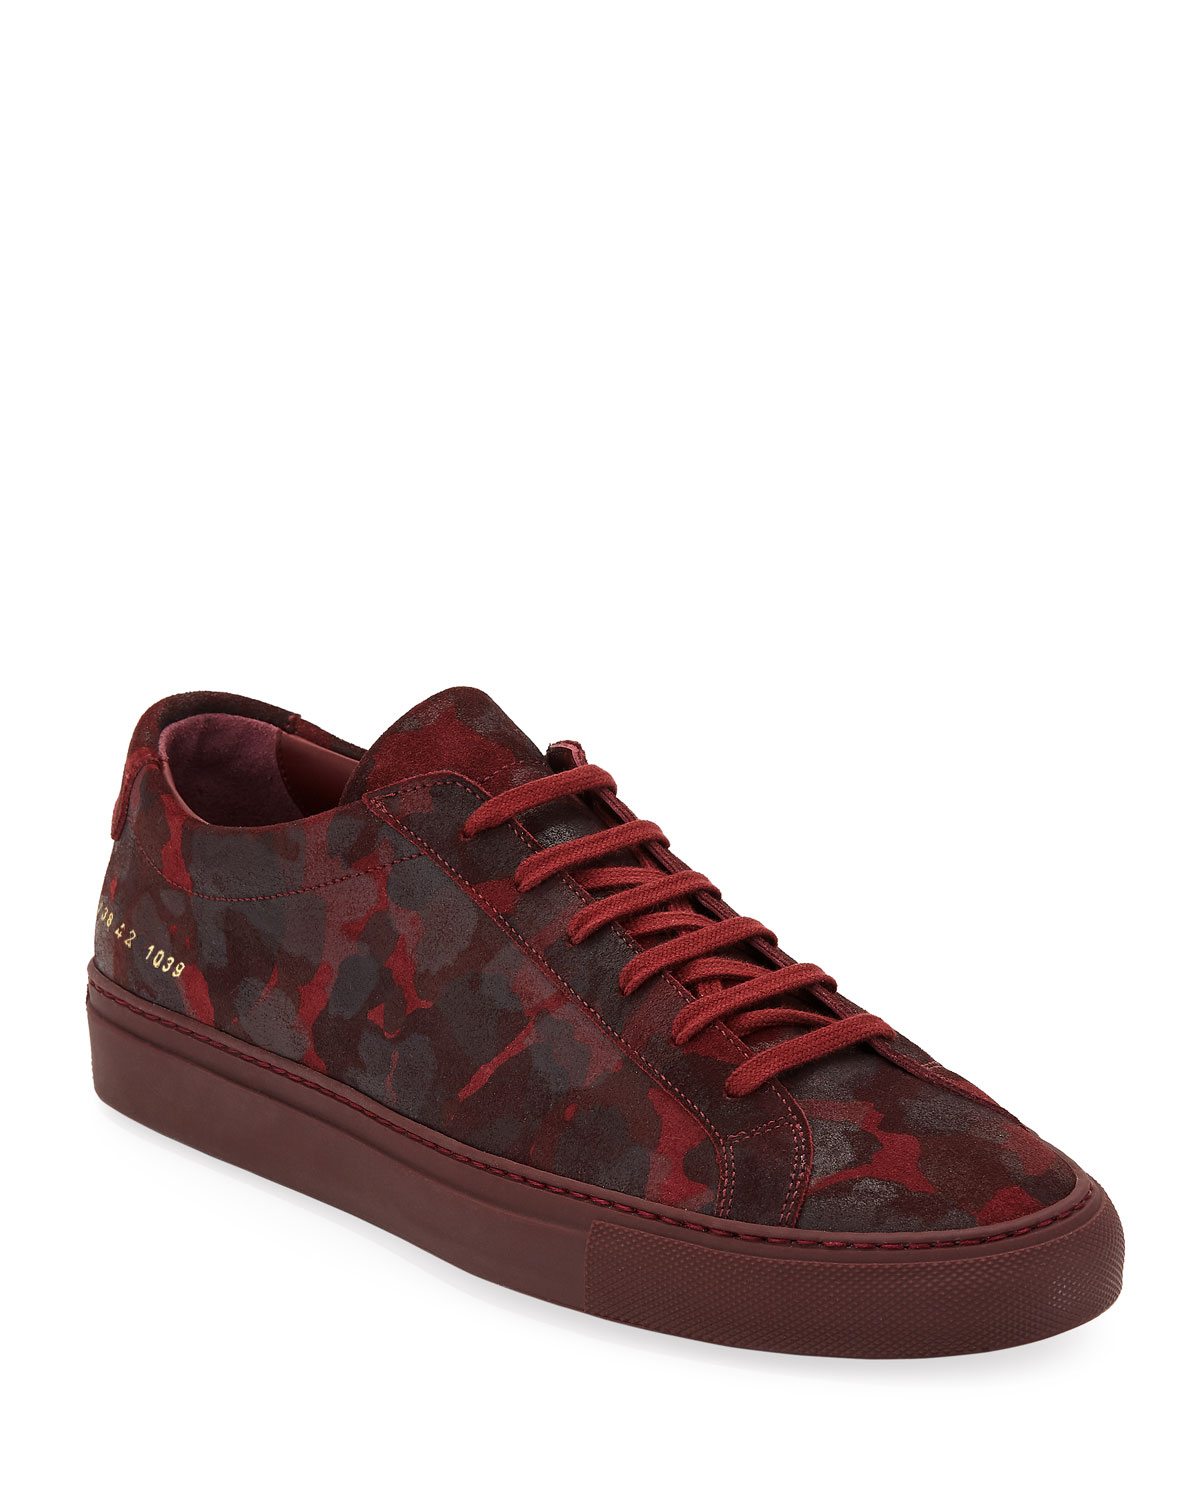 4fcb2b5f1c0f Common Projects Men s Achilles Camo Suede Low-Top Sneakers